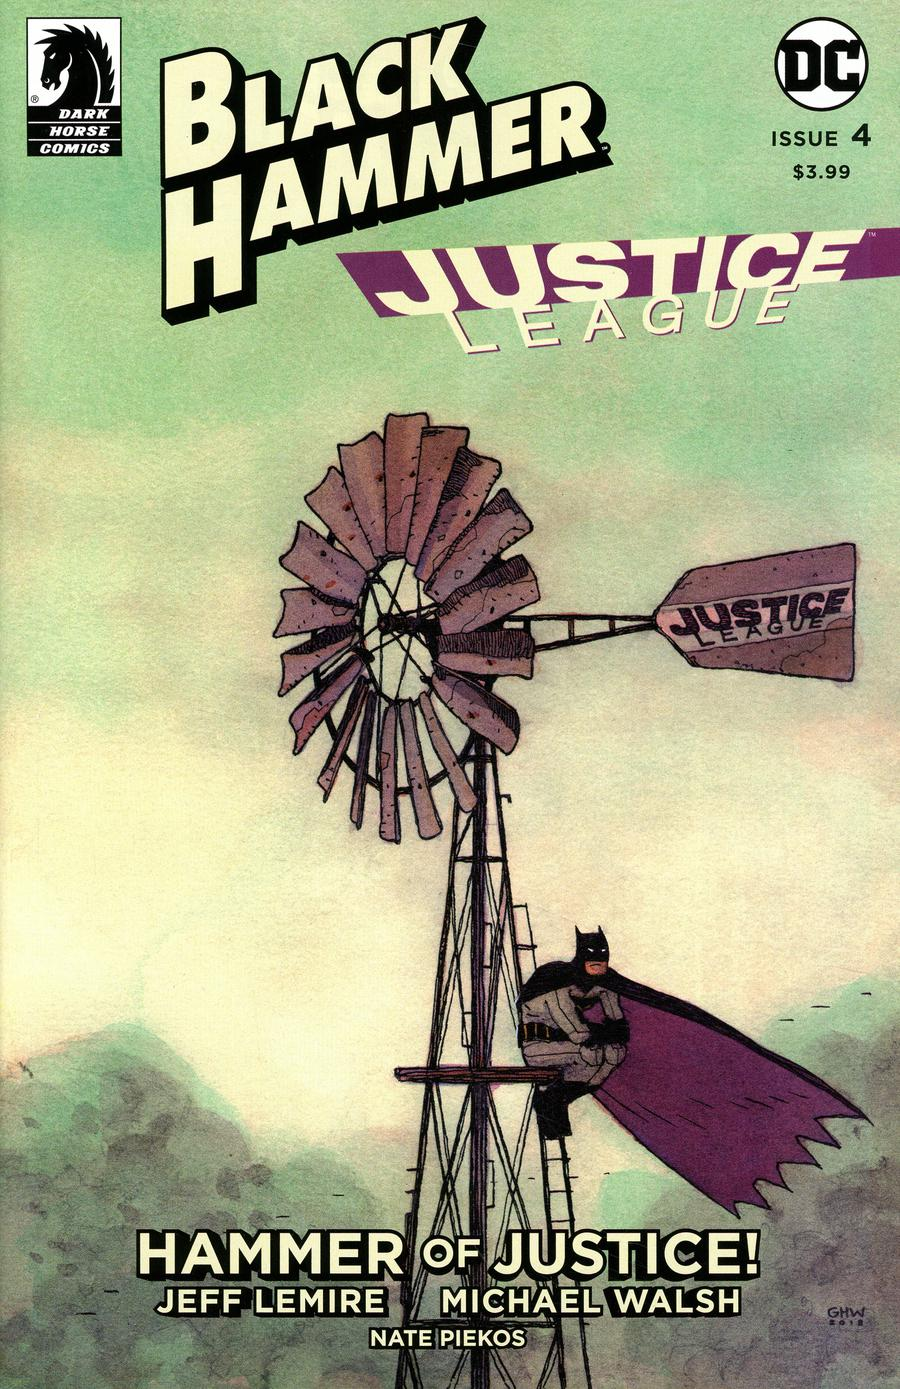 Black Hammer Justice League Hammer Of Justice #4 Cover D Variant Gabriel Walta Cover